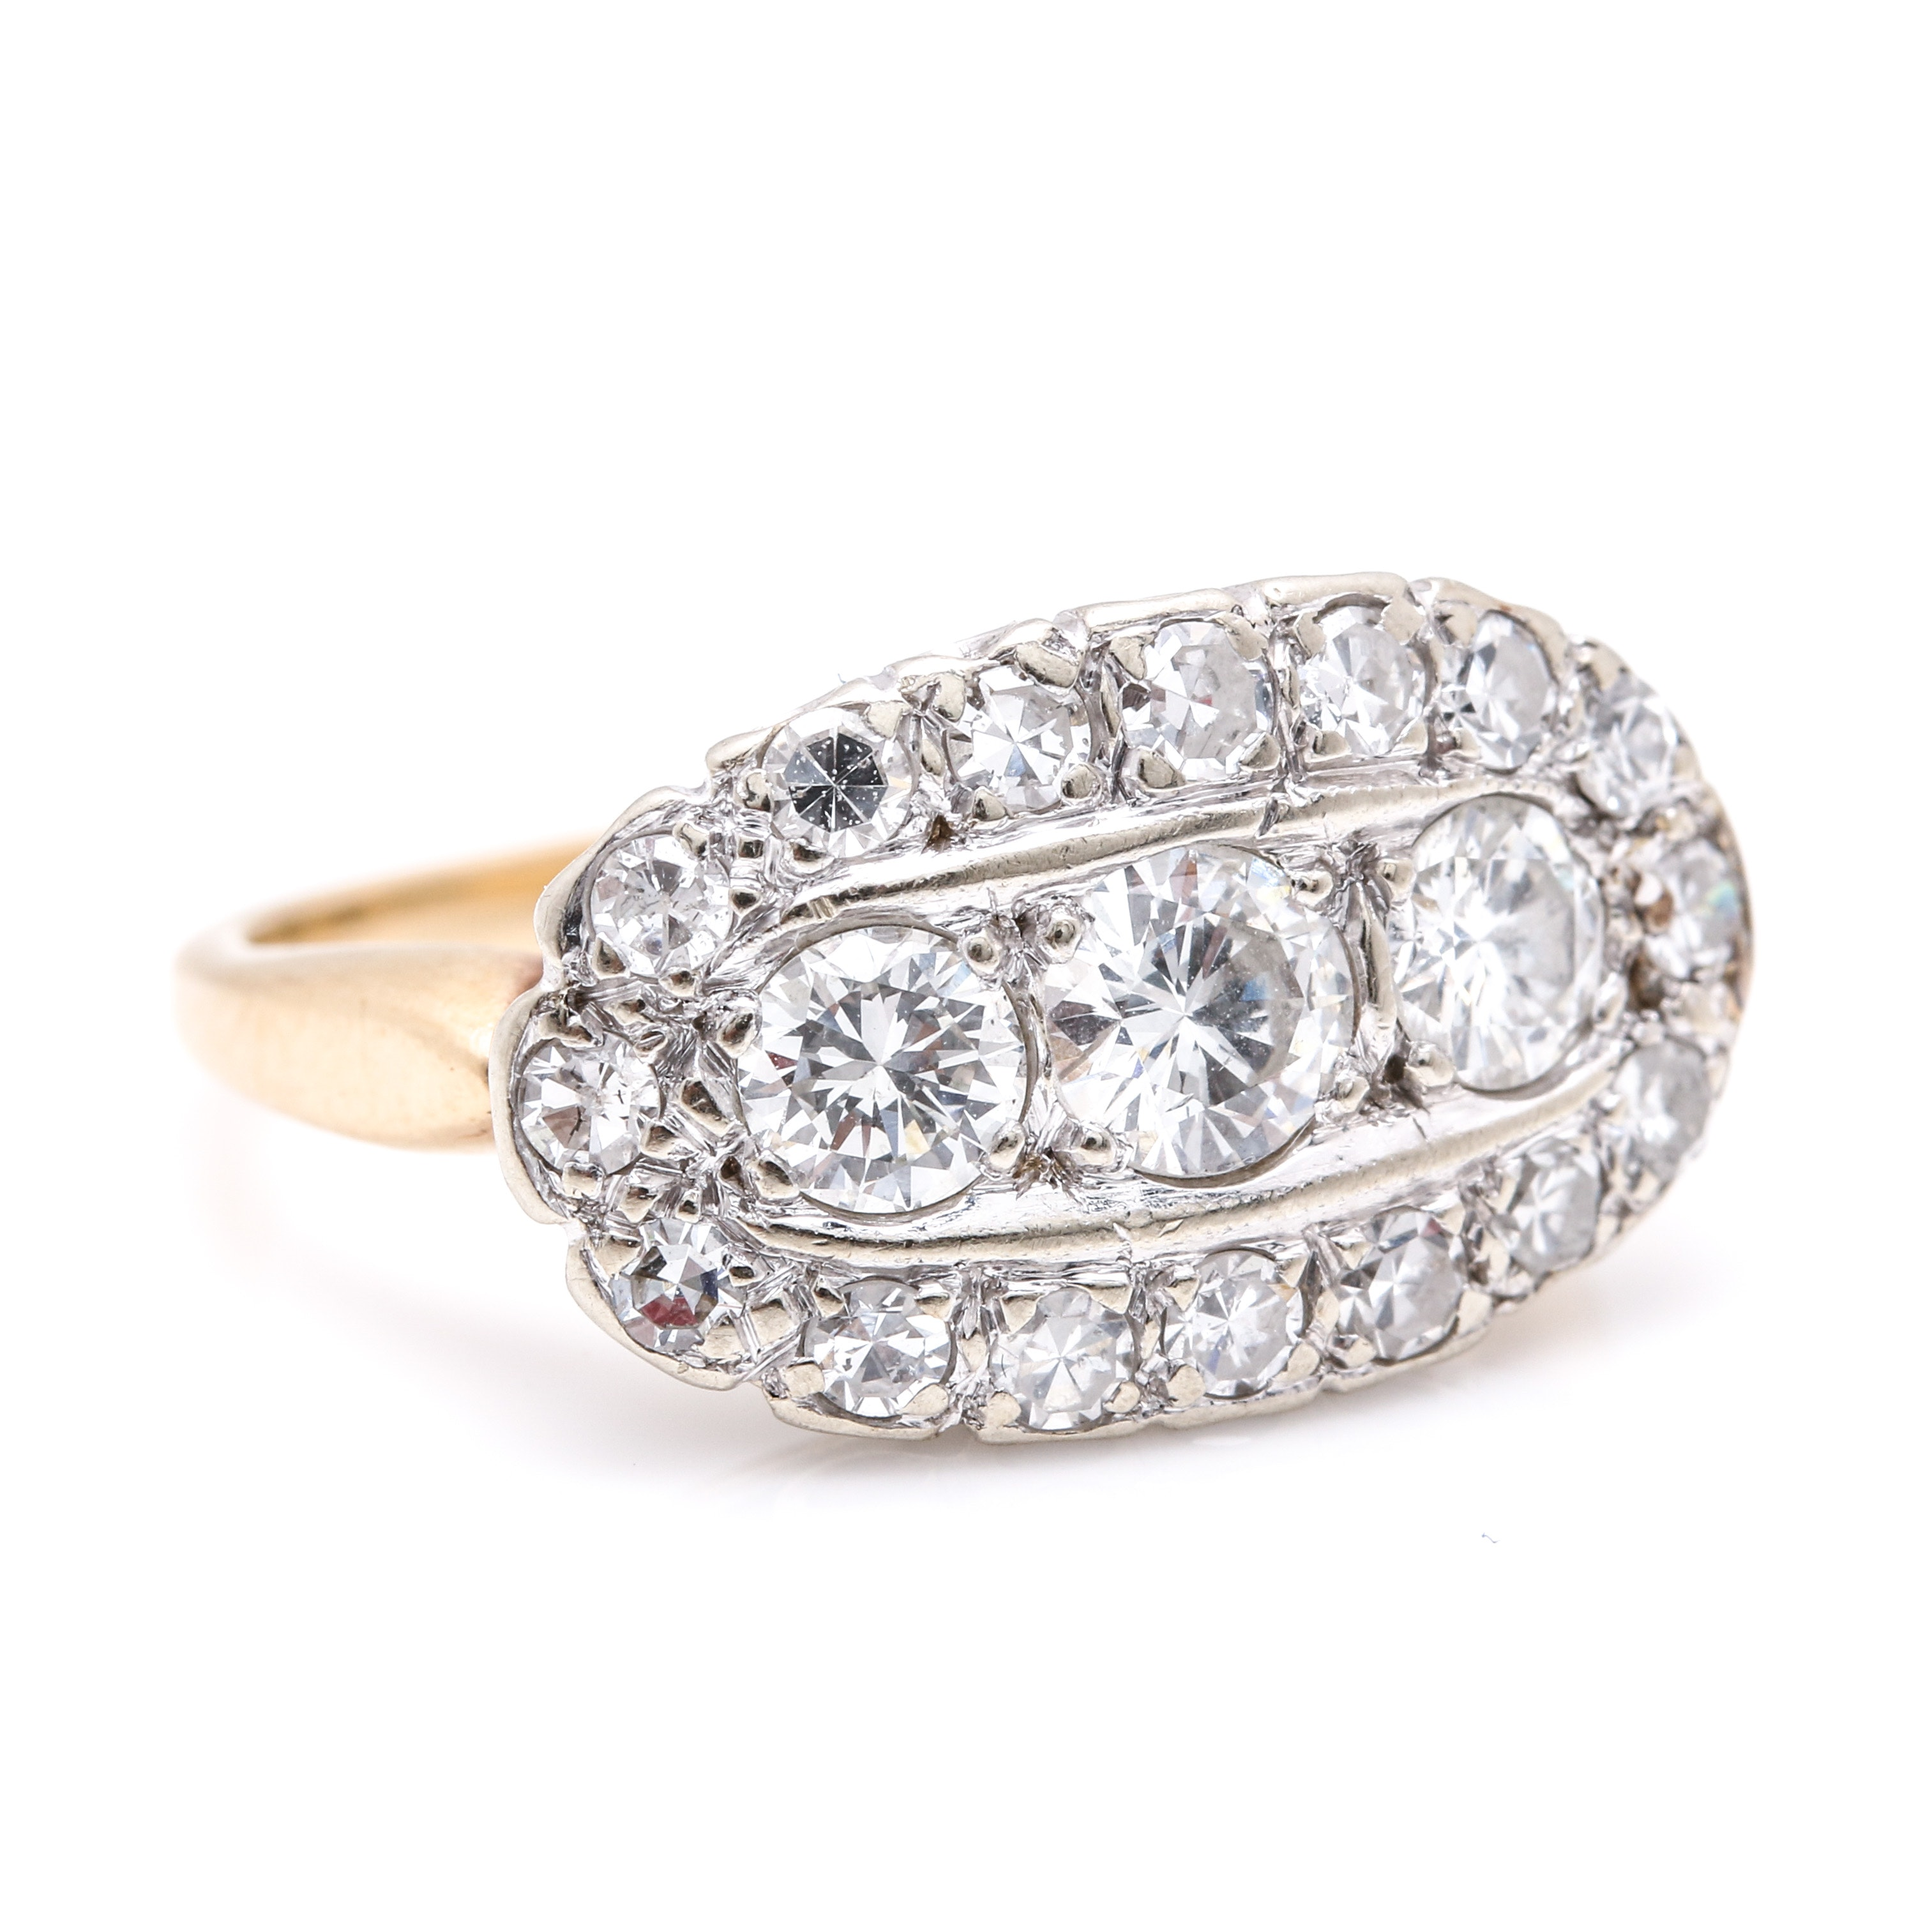 14K Yellow and White Gold 1.25 CTW Diamond Ring